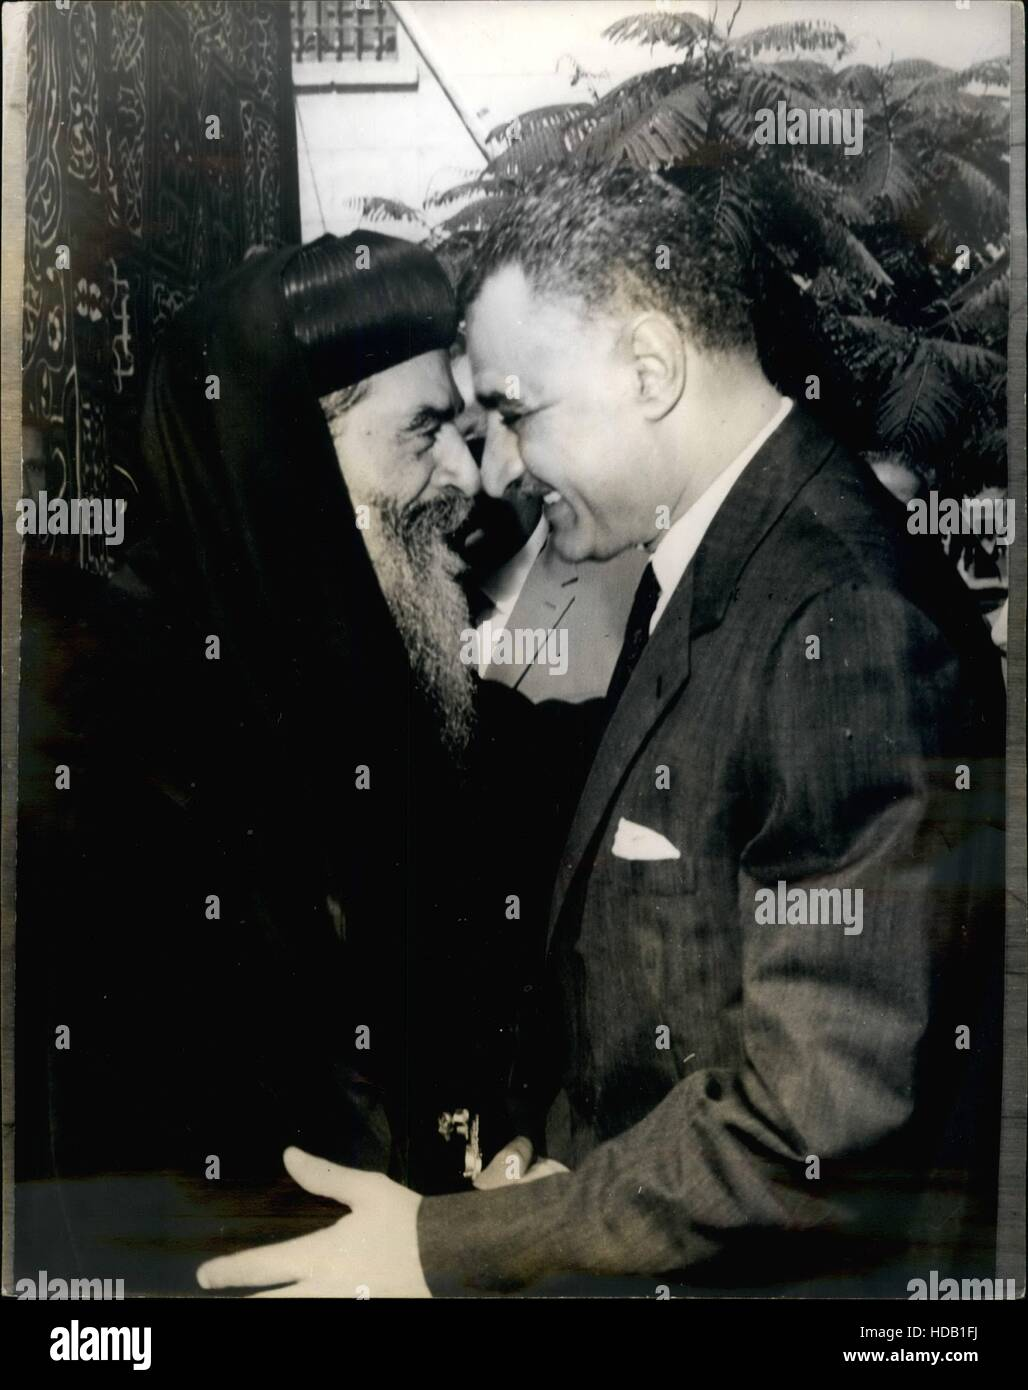 July 7, 1965 - Cairo, Egypt - NOSE TO NOSE: Egyptian President NASSER, 47, (Gamal Abdel Nasser Hussein), gives BEATITUDE - Stock Image